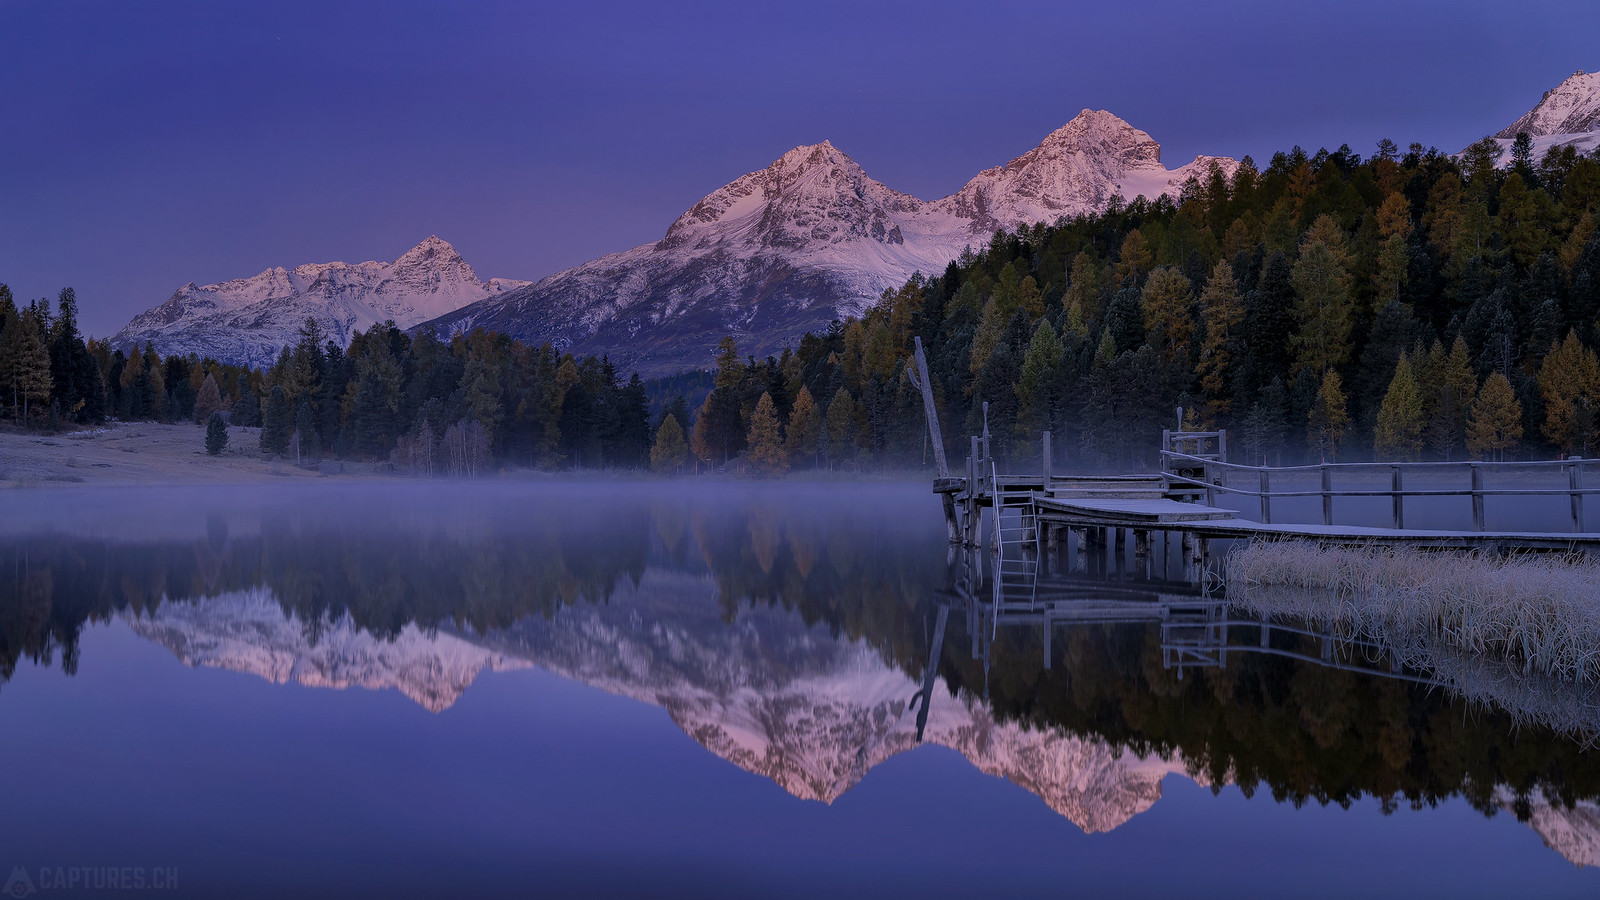 End of the night - Stazersee